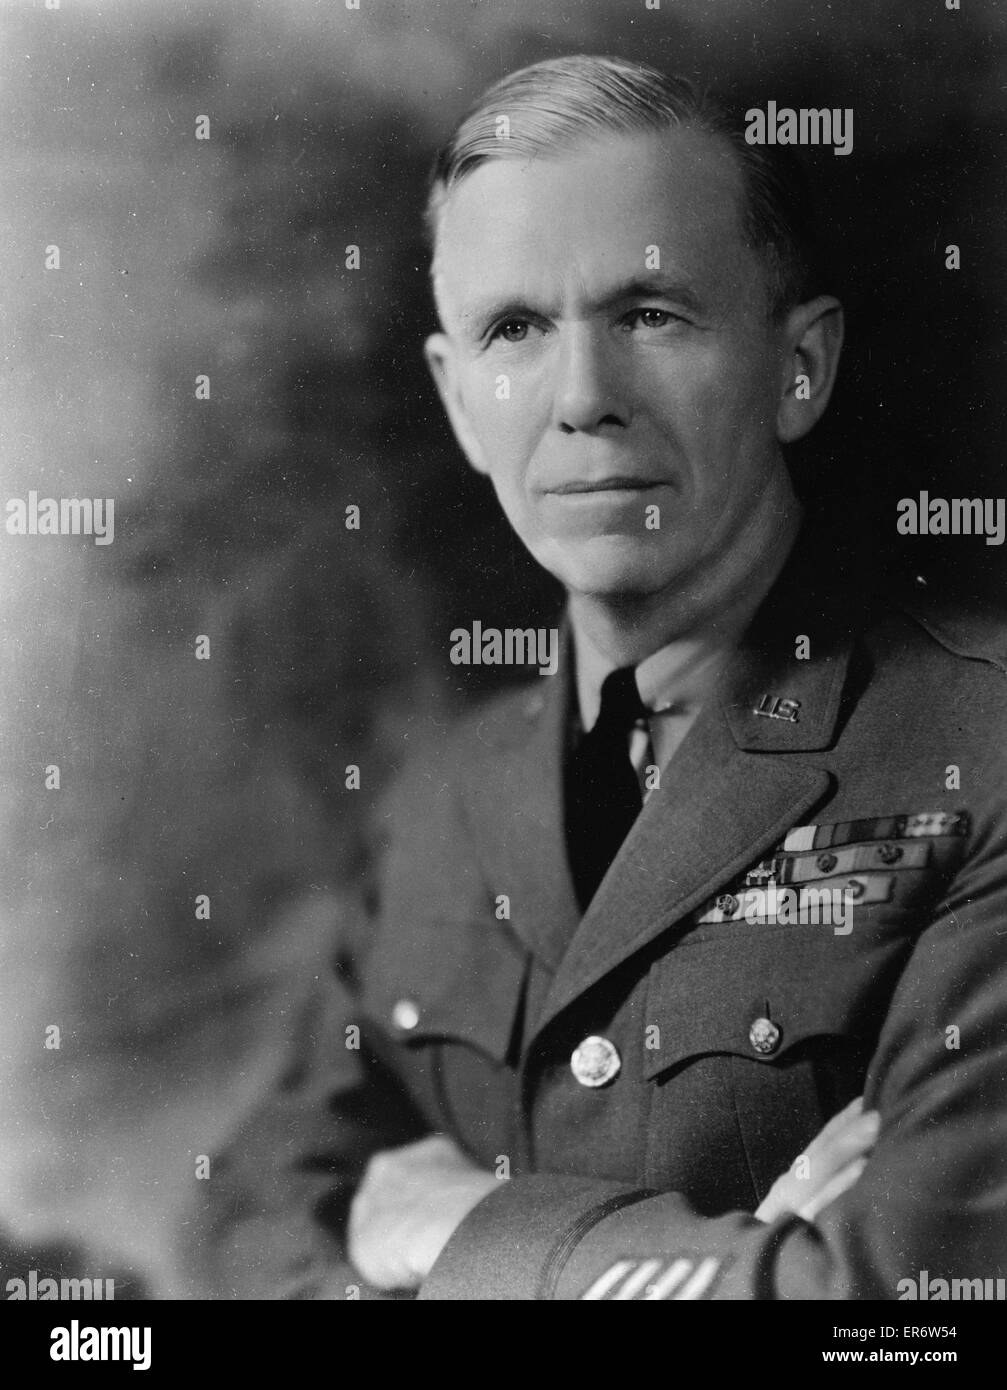 General George C. Marshall, chief of staff. Date 1940 Aug. - Stock Image